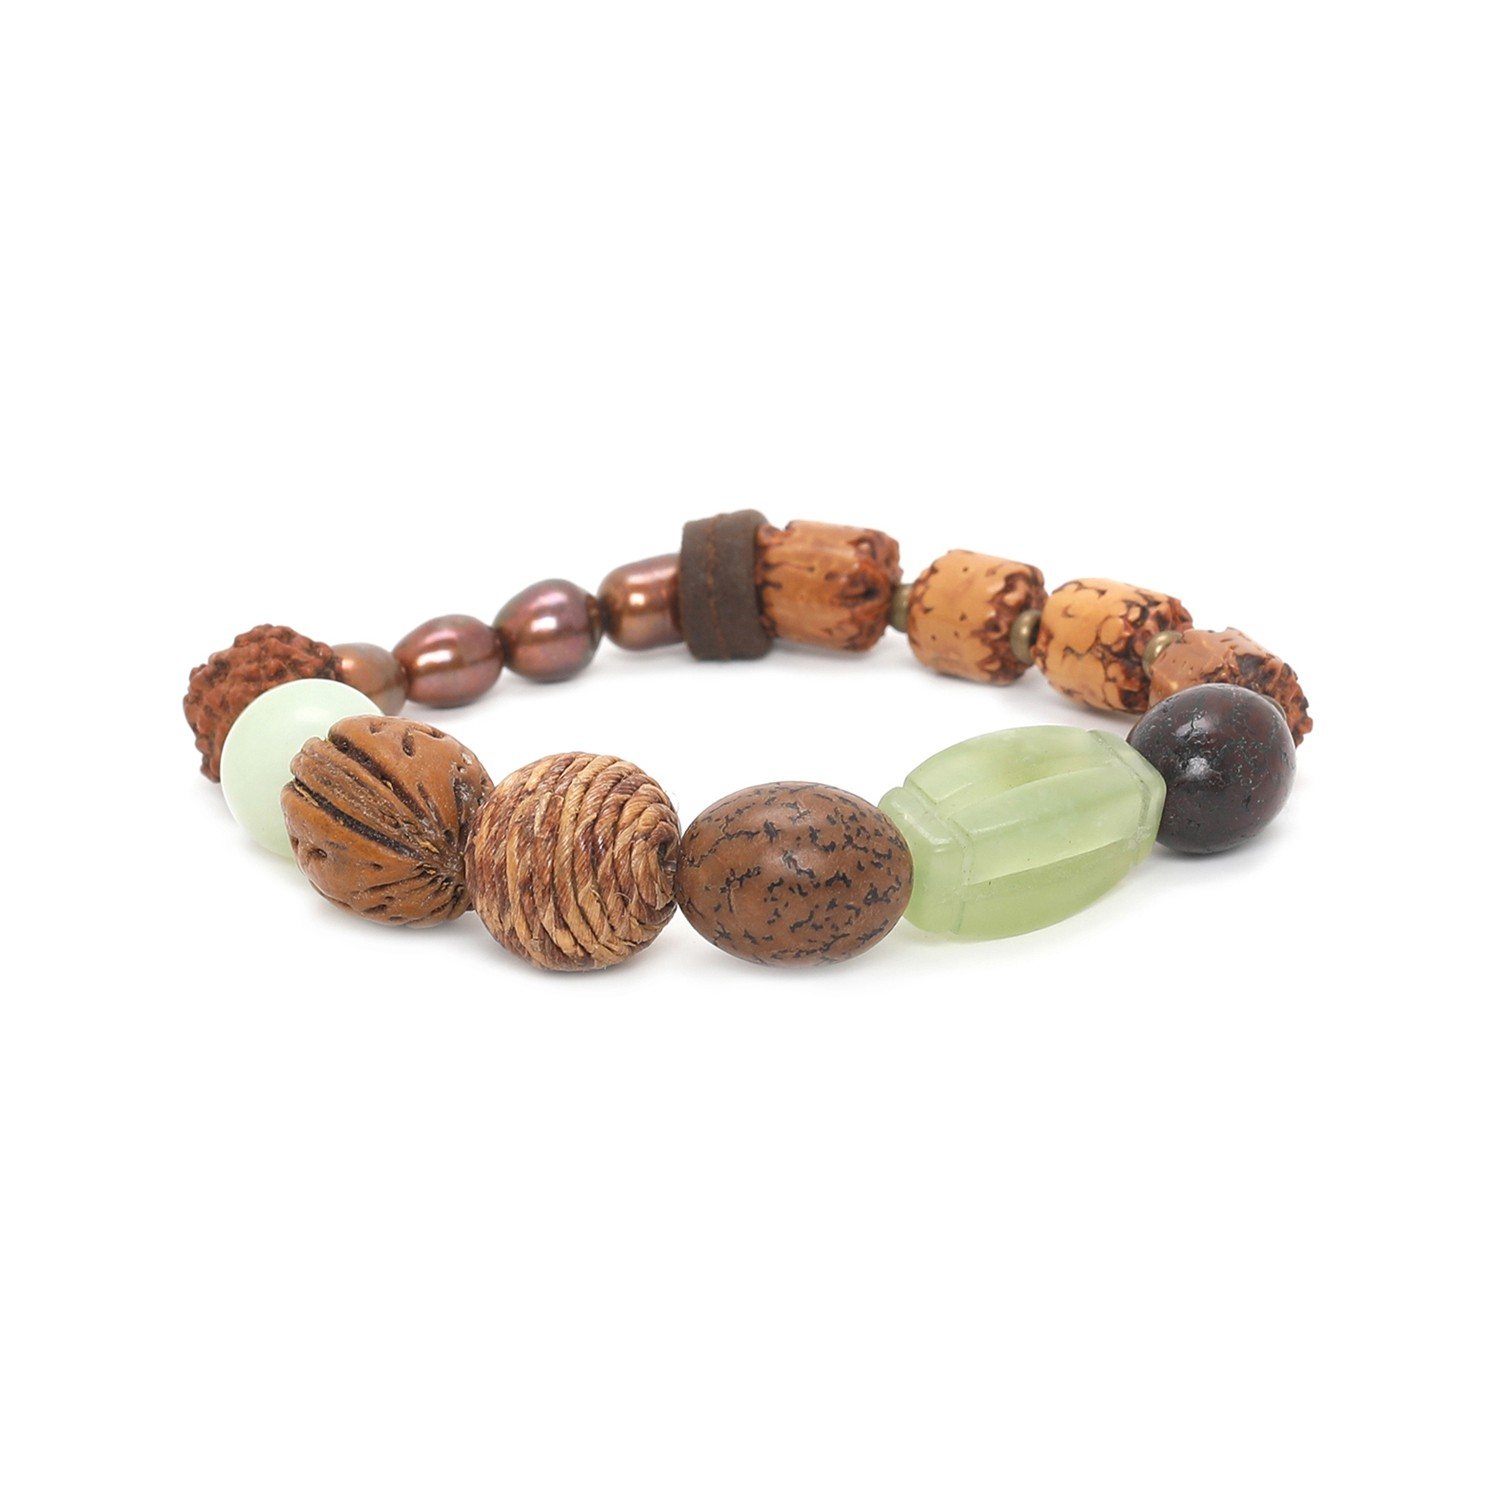 BURUNDI assorted beads stretch bracelet